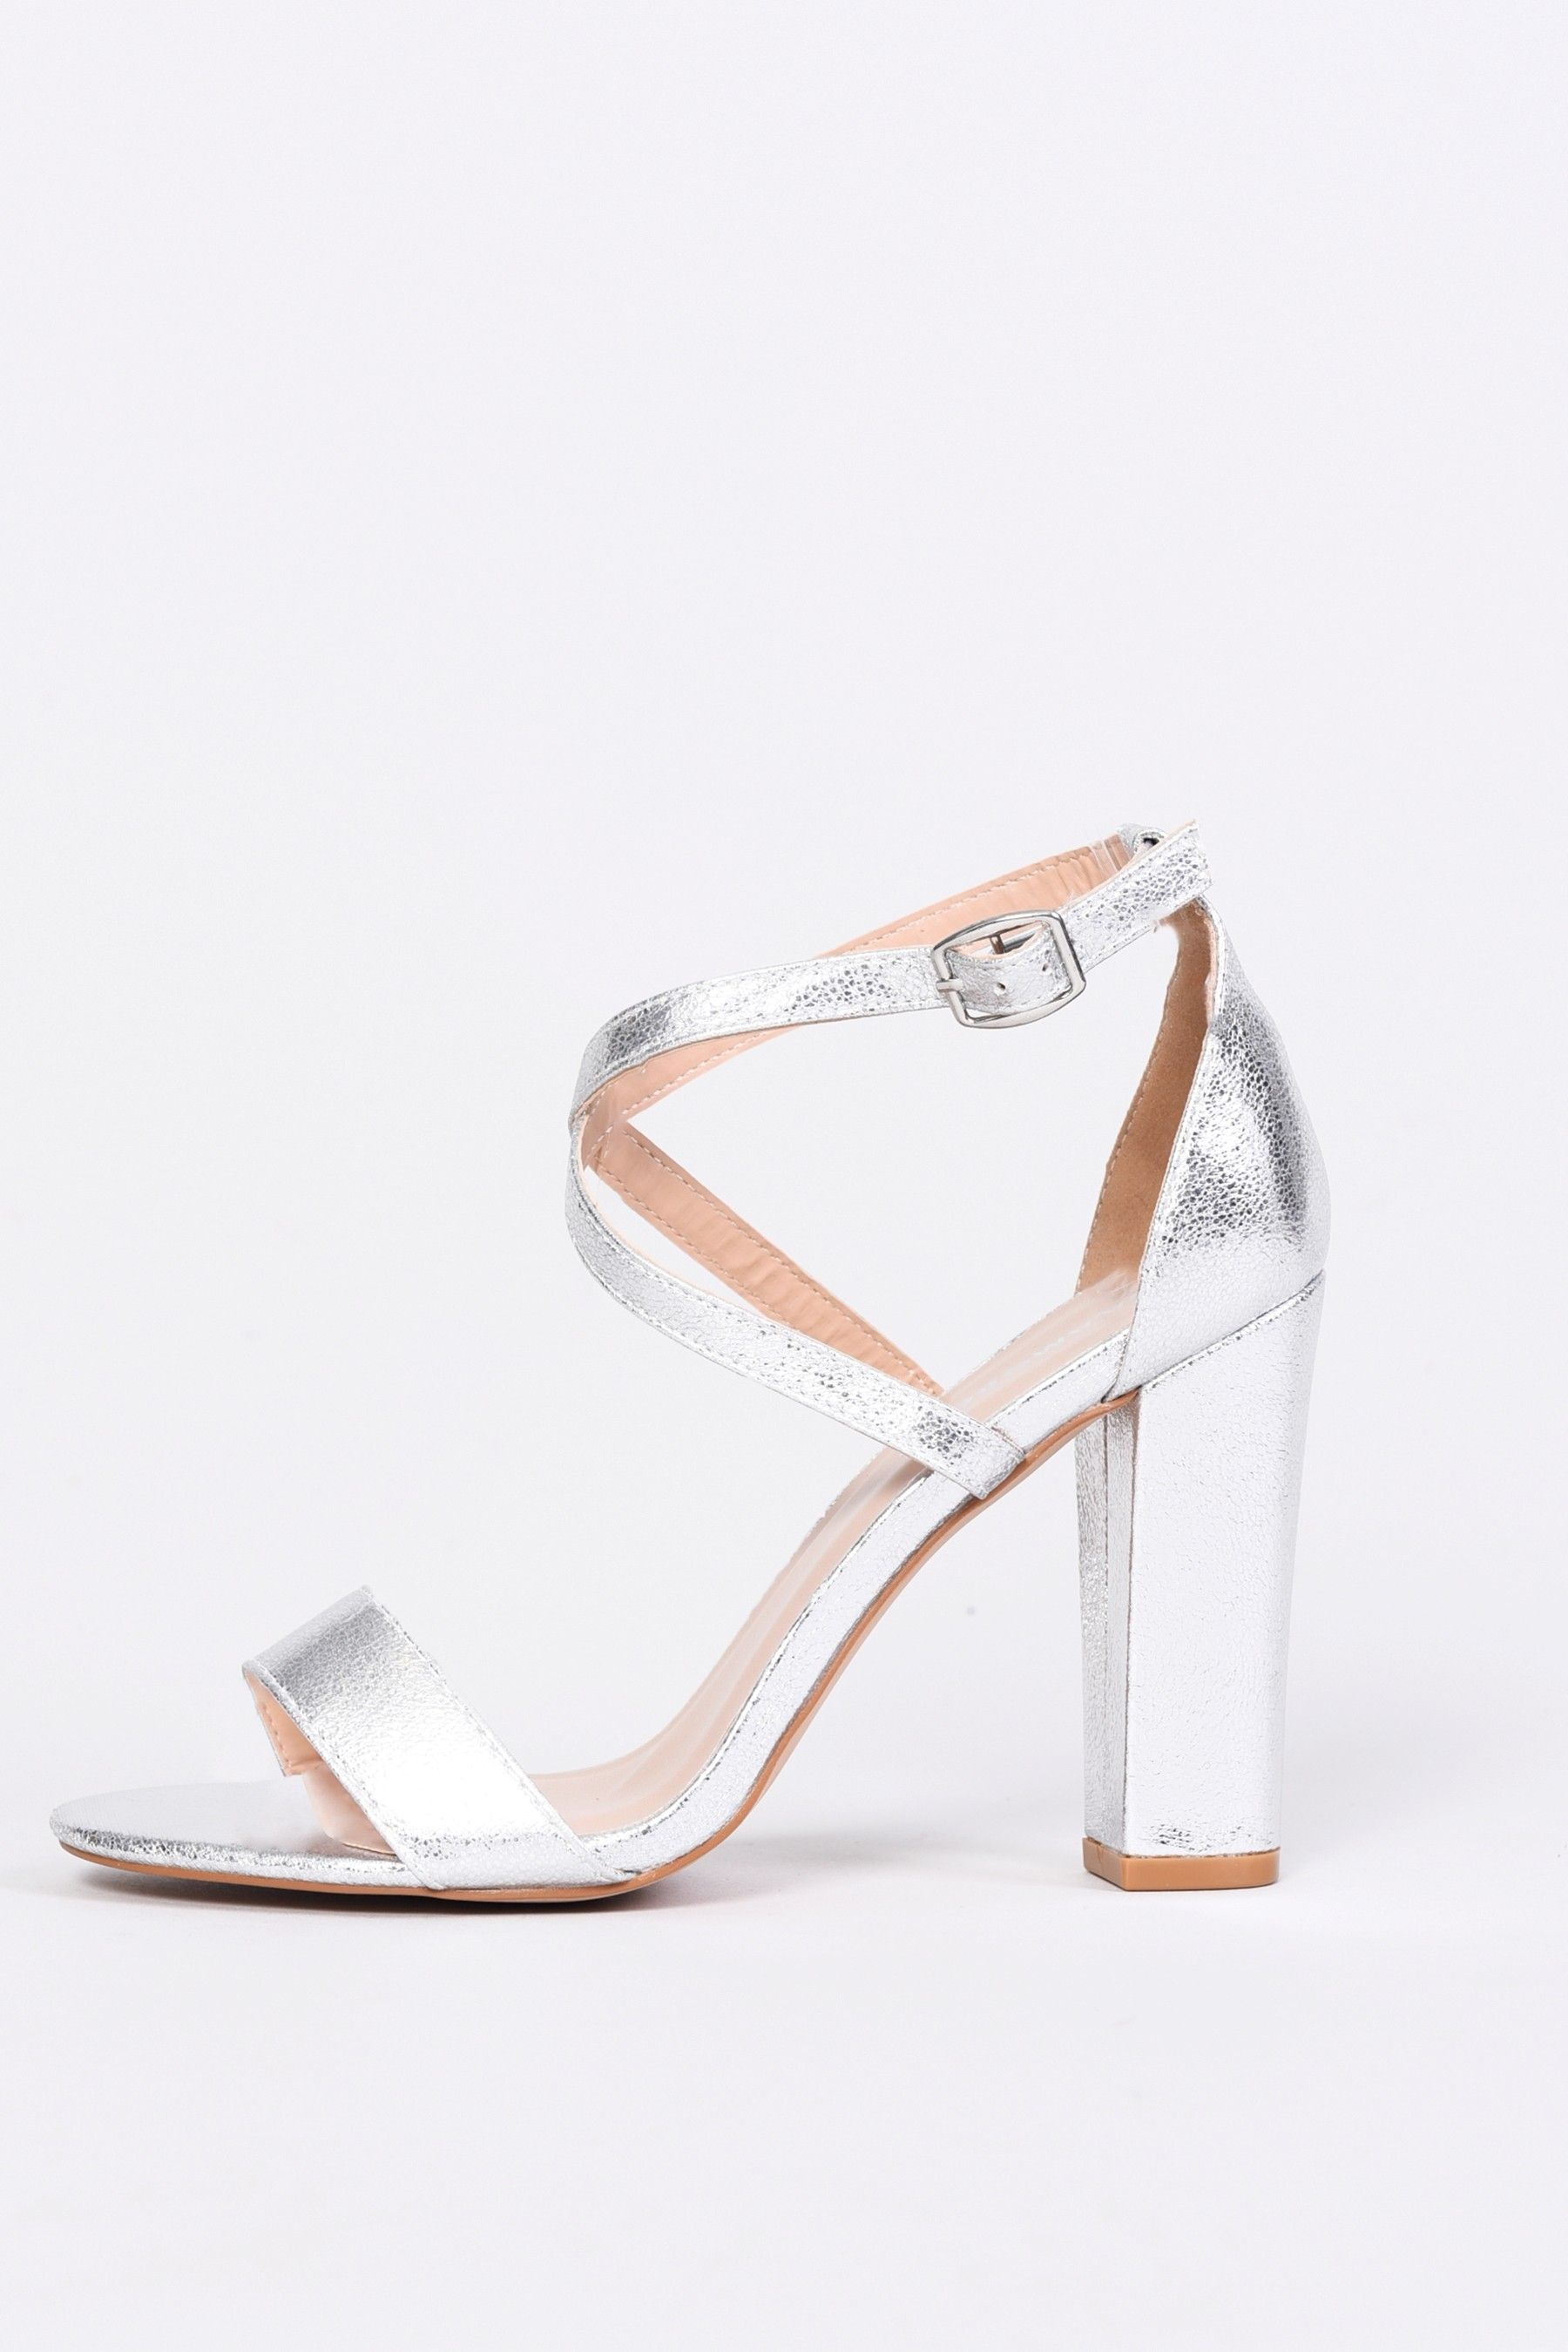 26477717ff129 Womens Glamorous Criss Cross Strap Sandal - Silver | Products ...